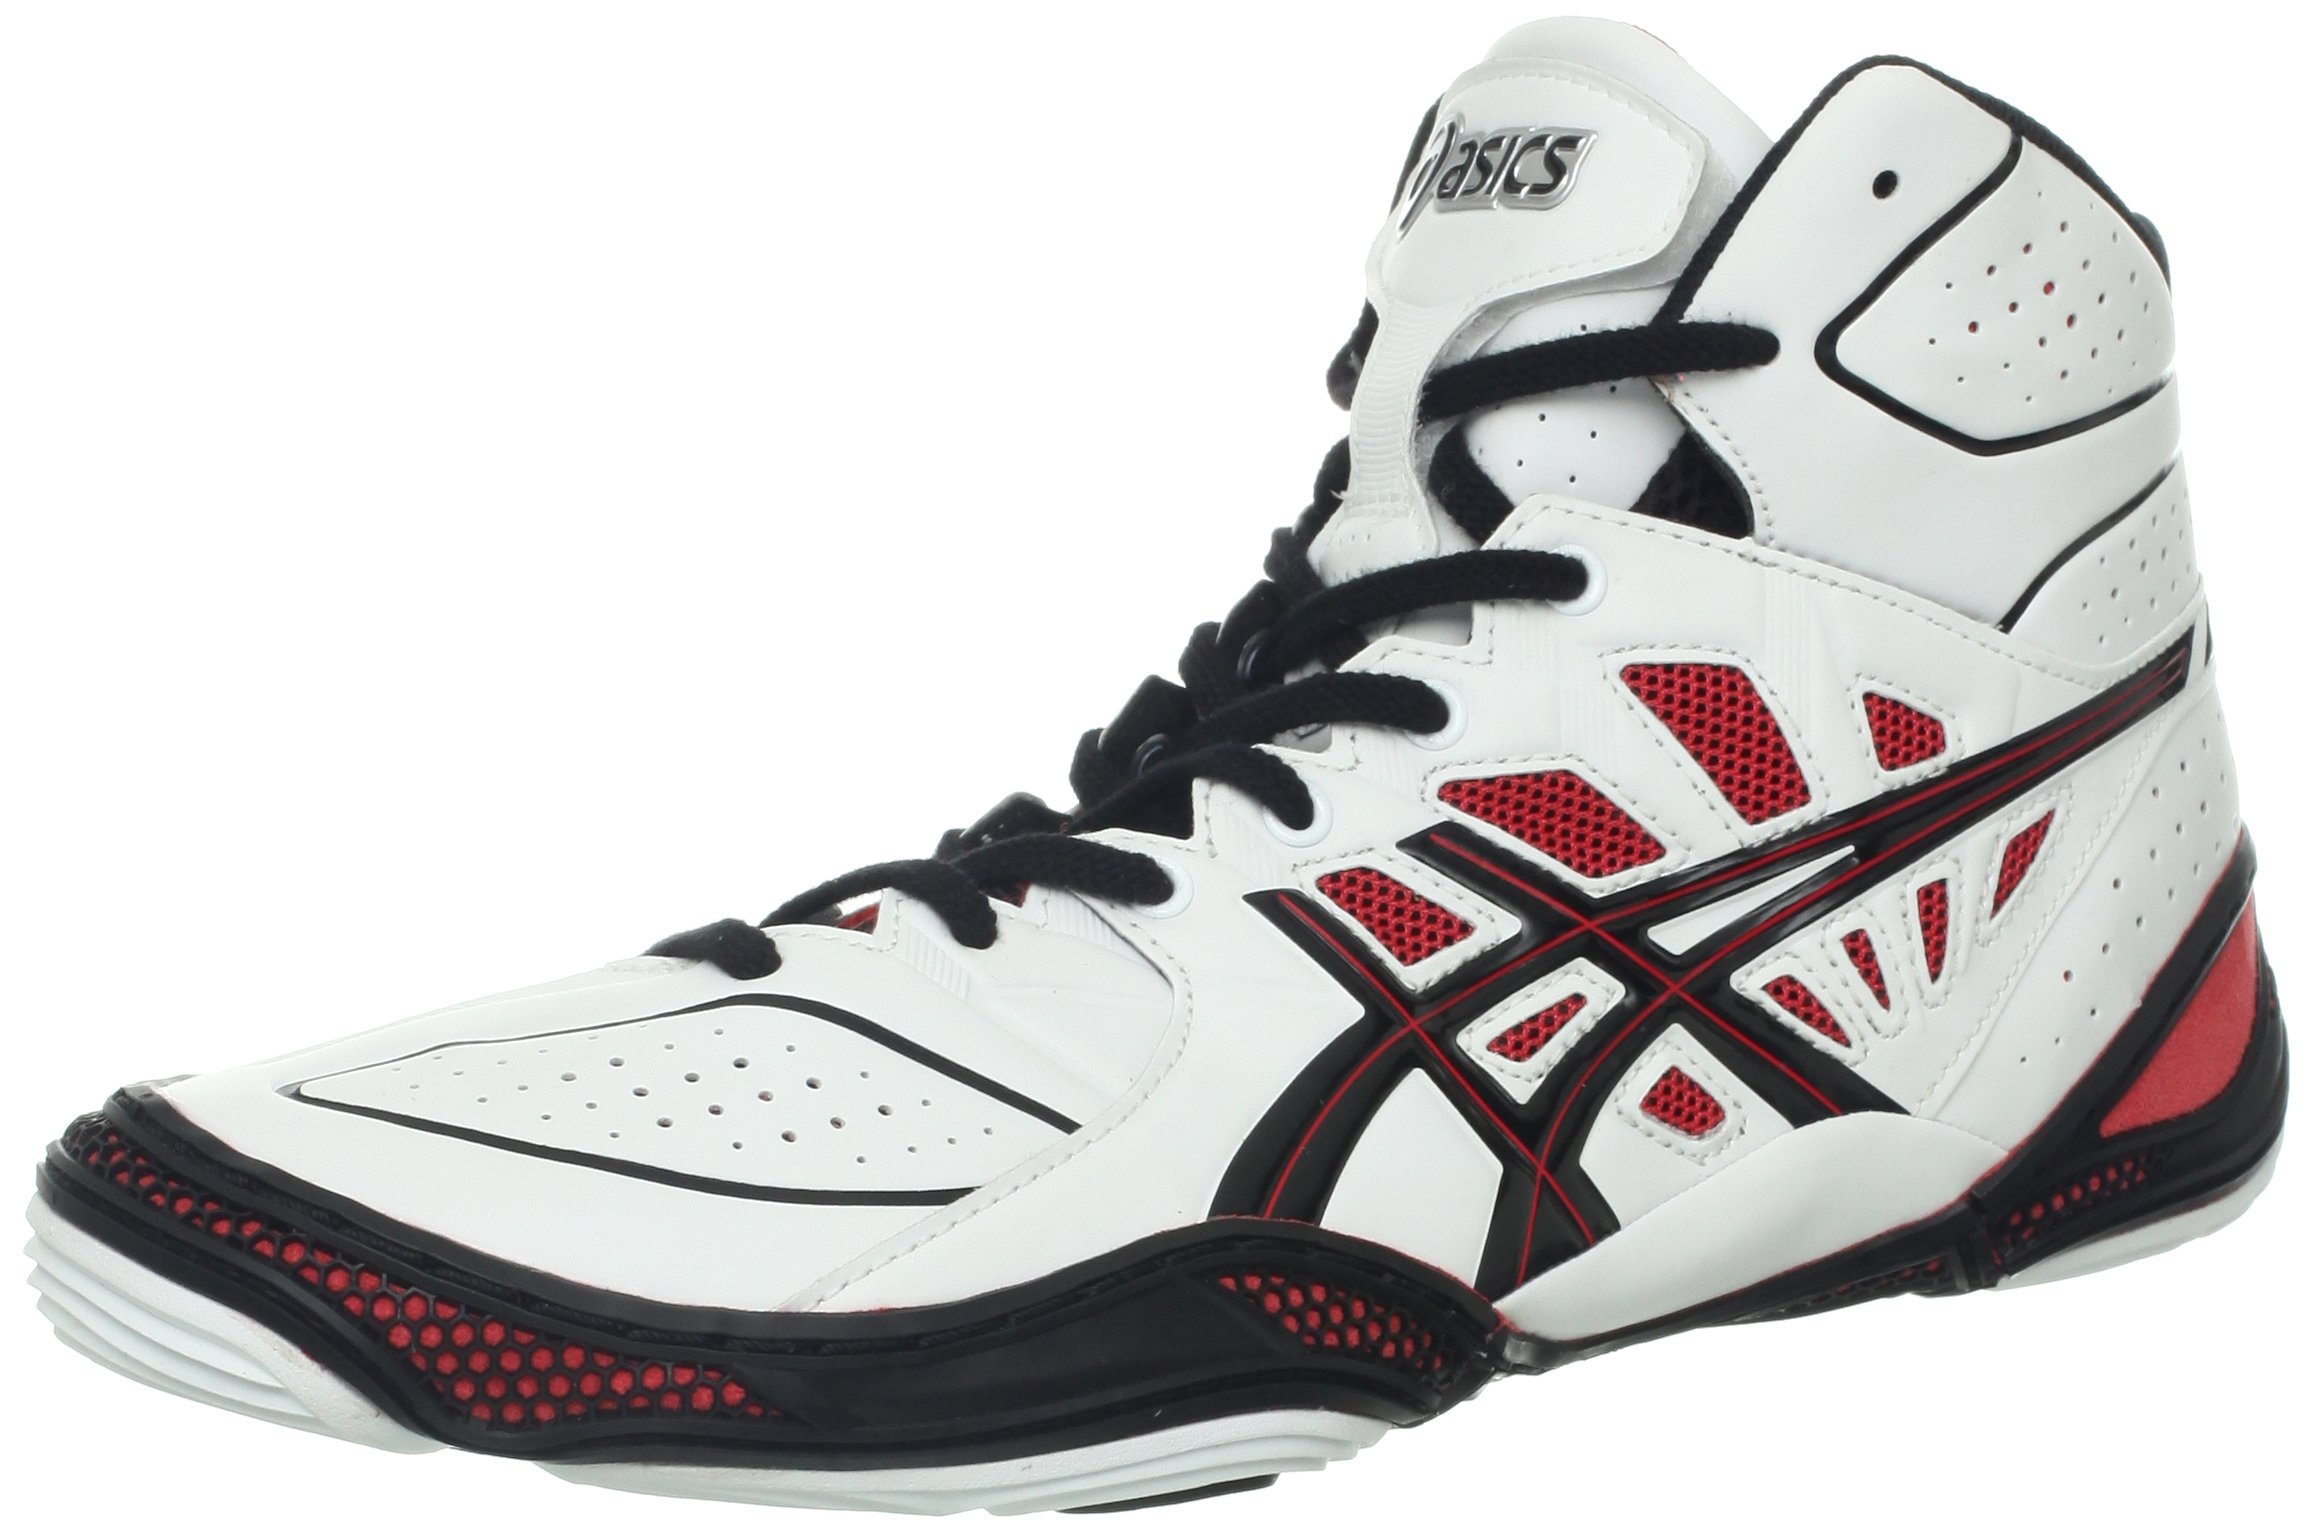 ASICS Men's Dan Gable Ultimate 3 Wrestling Shoe,White/Black/Red,8.5 M US by ASICS